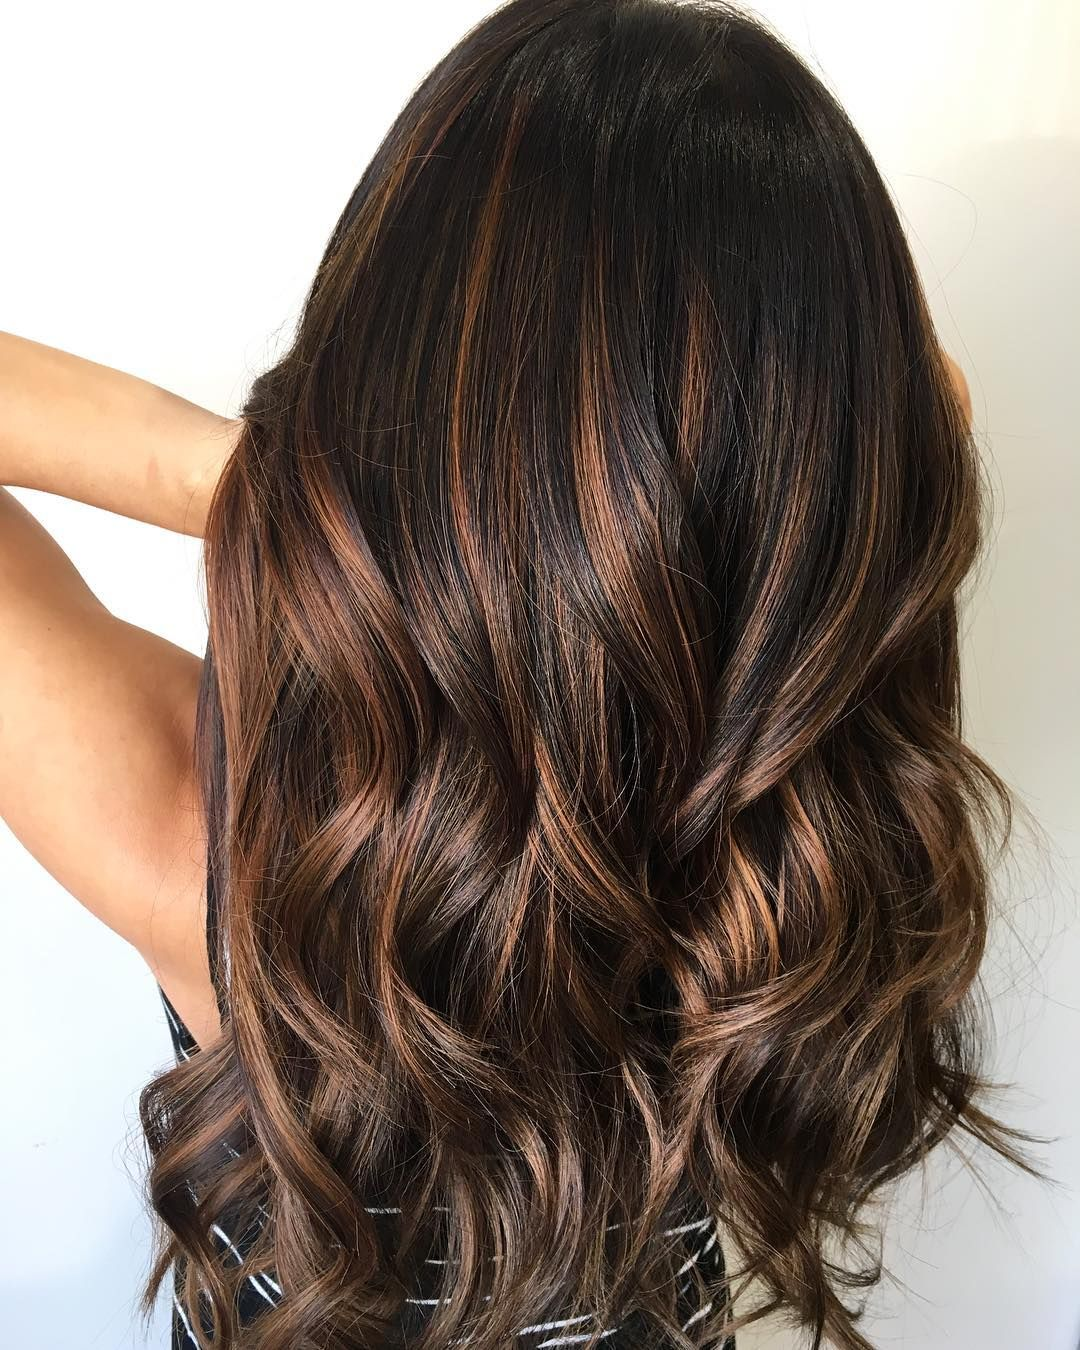 balayage dark brown hair color ideas for changing up your style